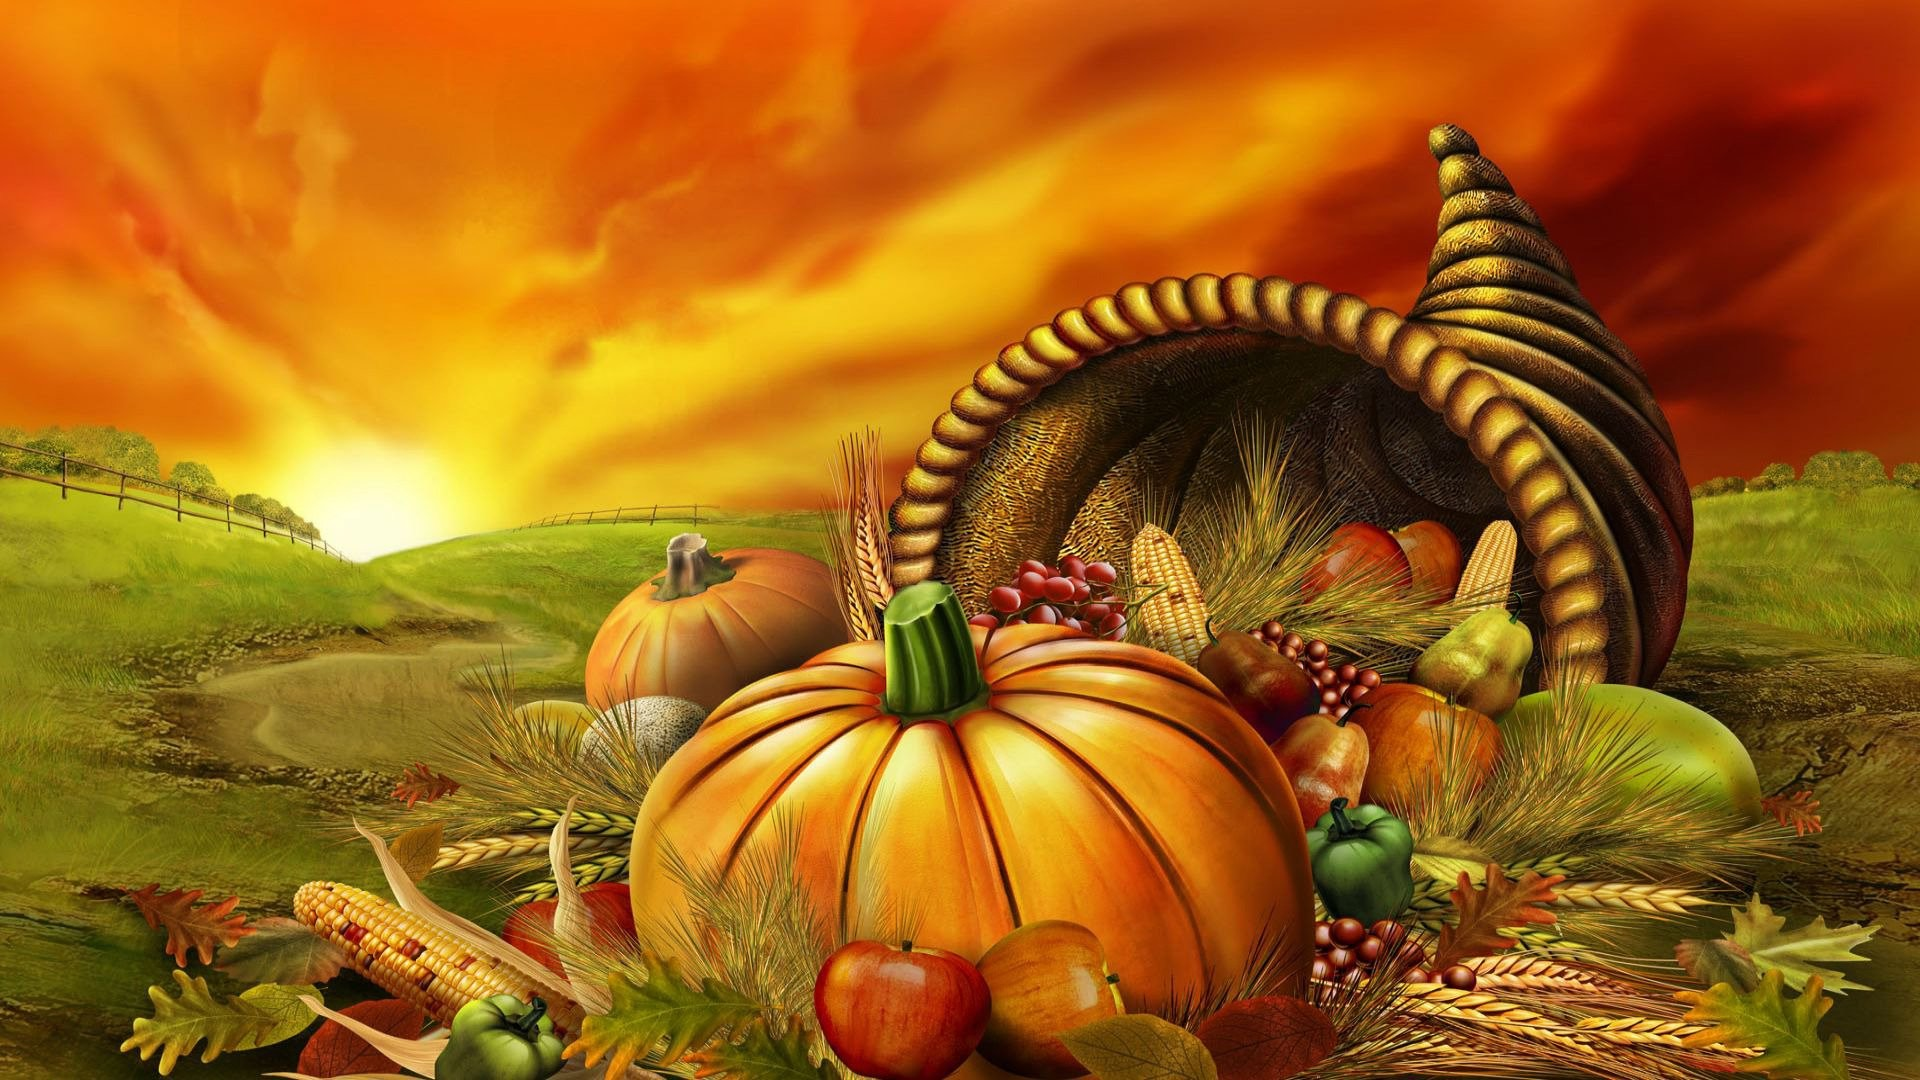 Res: 1920x1080, Awesome Fall Harvest Pics » Fall Harvest Wallpapers